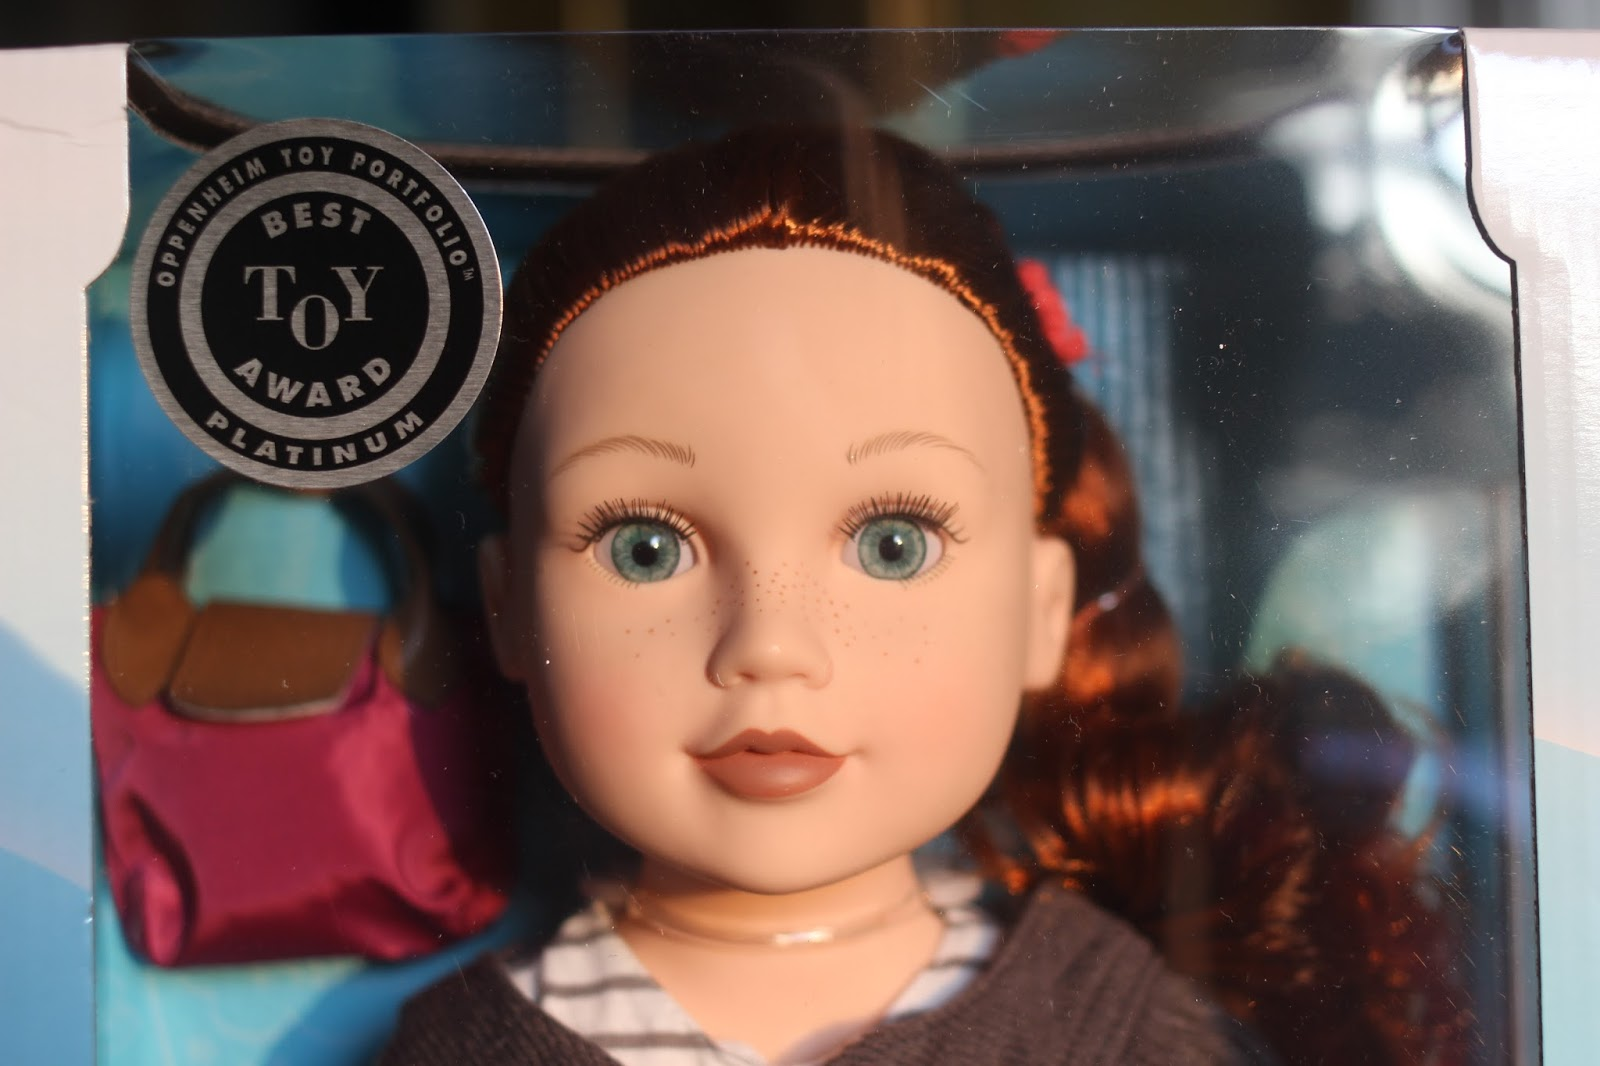 74e313b5708 In today's review, I wanted to share a new doll that I recently bought from  the Journey Girl's line at Toys'R'Us.